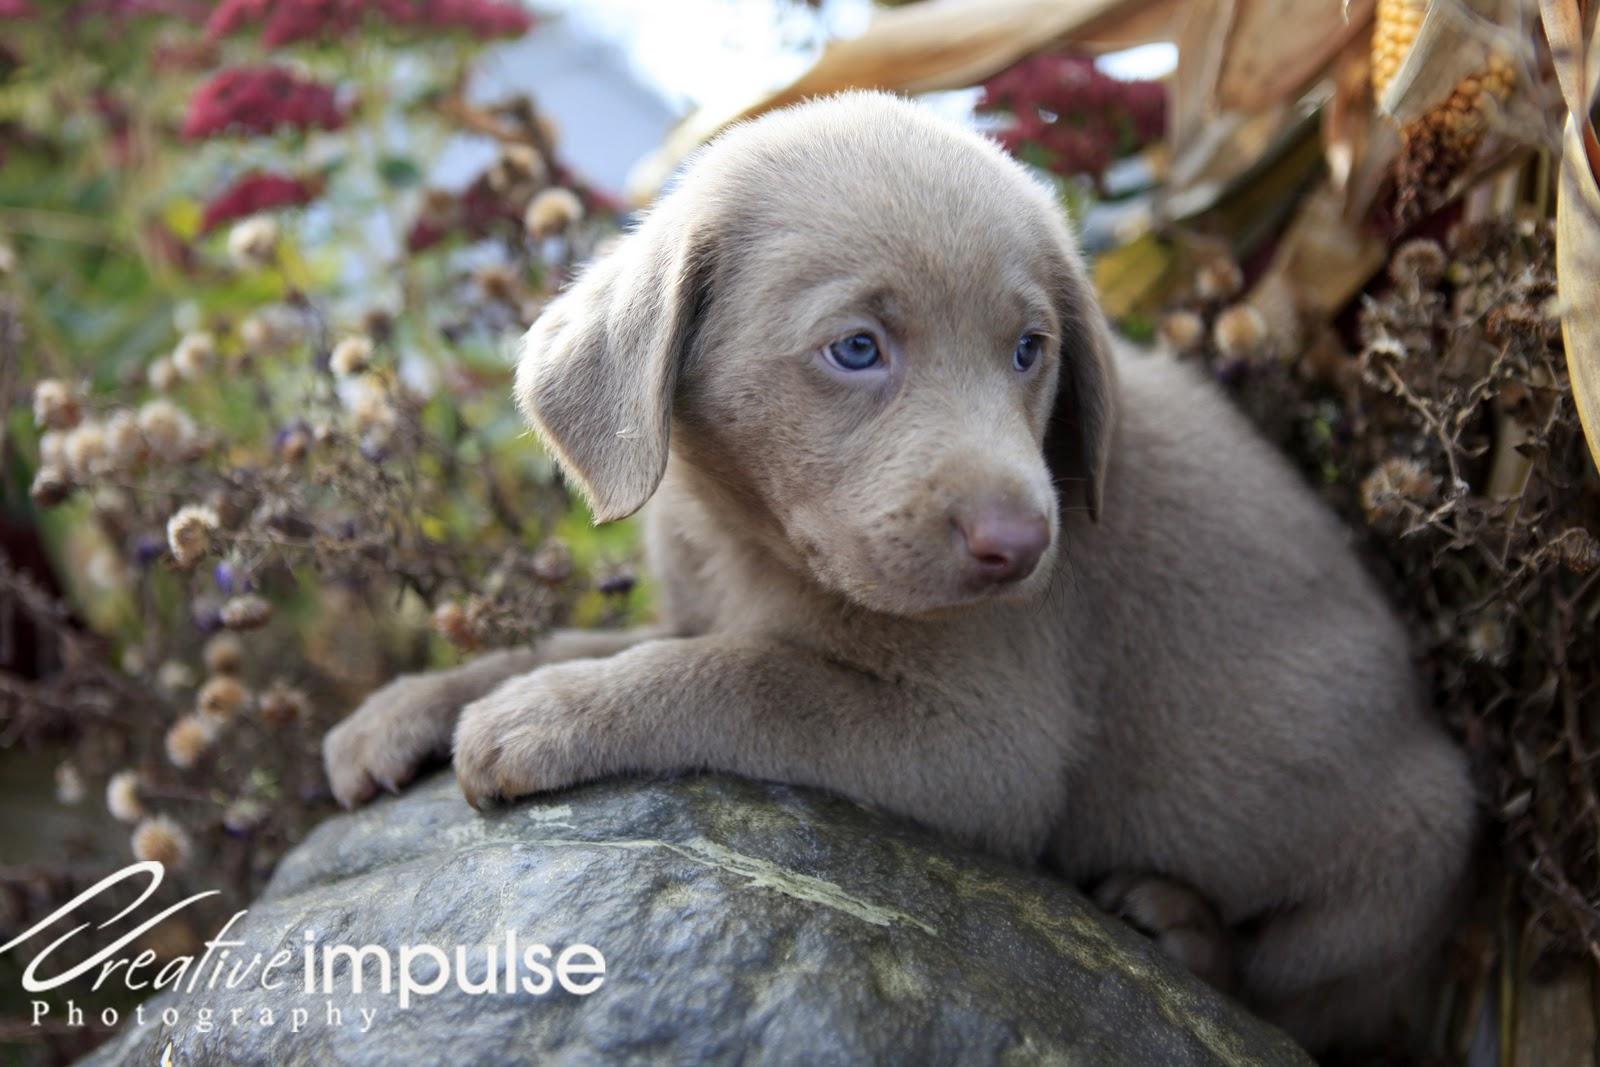 Silver Lab Puppies with Blue Eyes high resolution widescreen